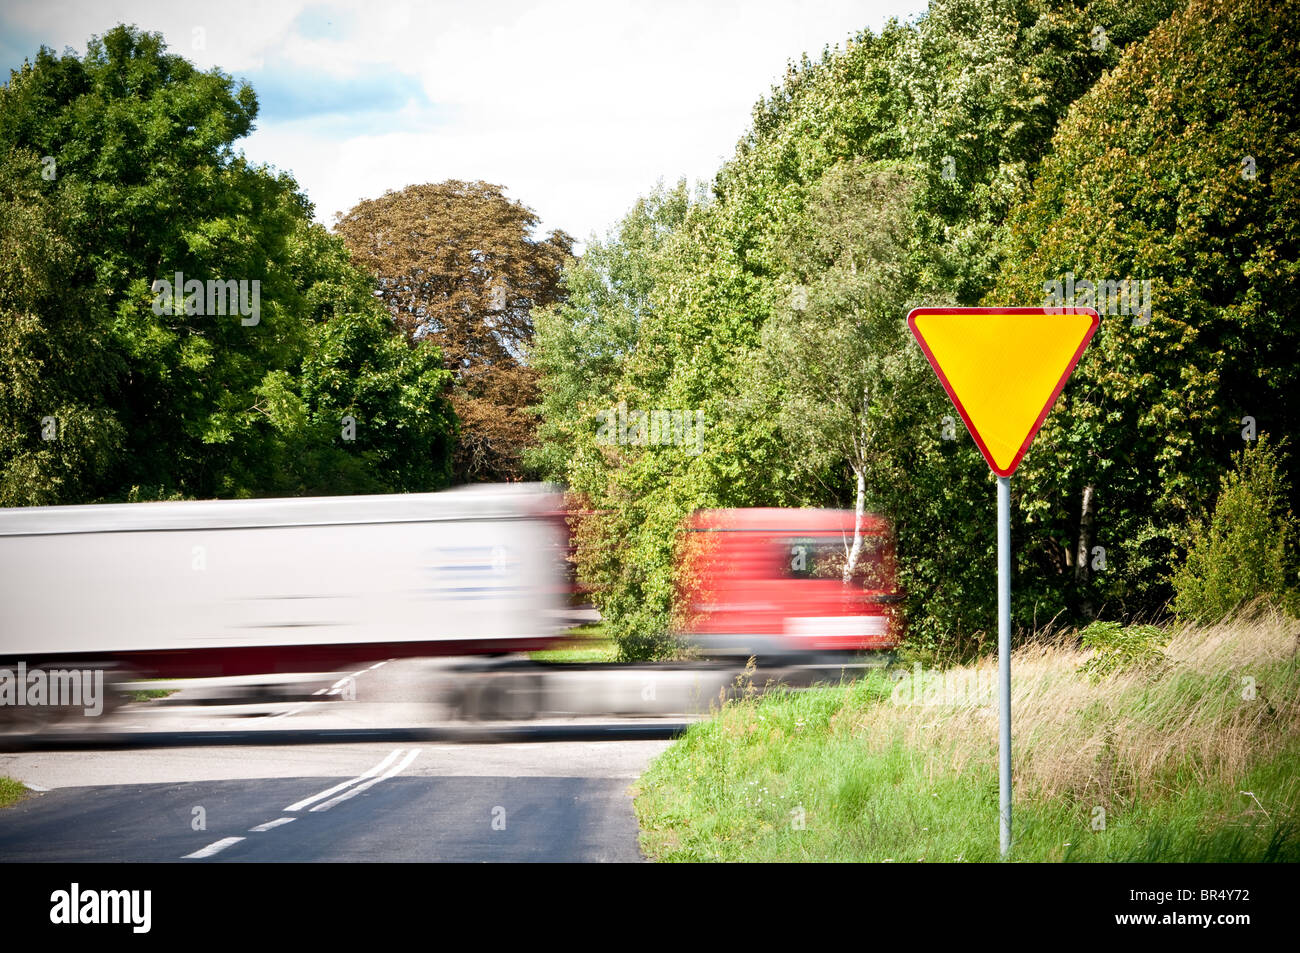 yield sign near crossroad and rushing truck - Stock Image